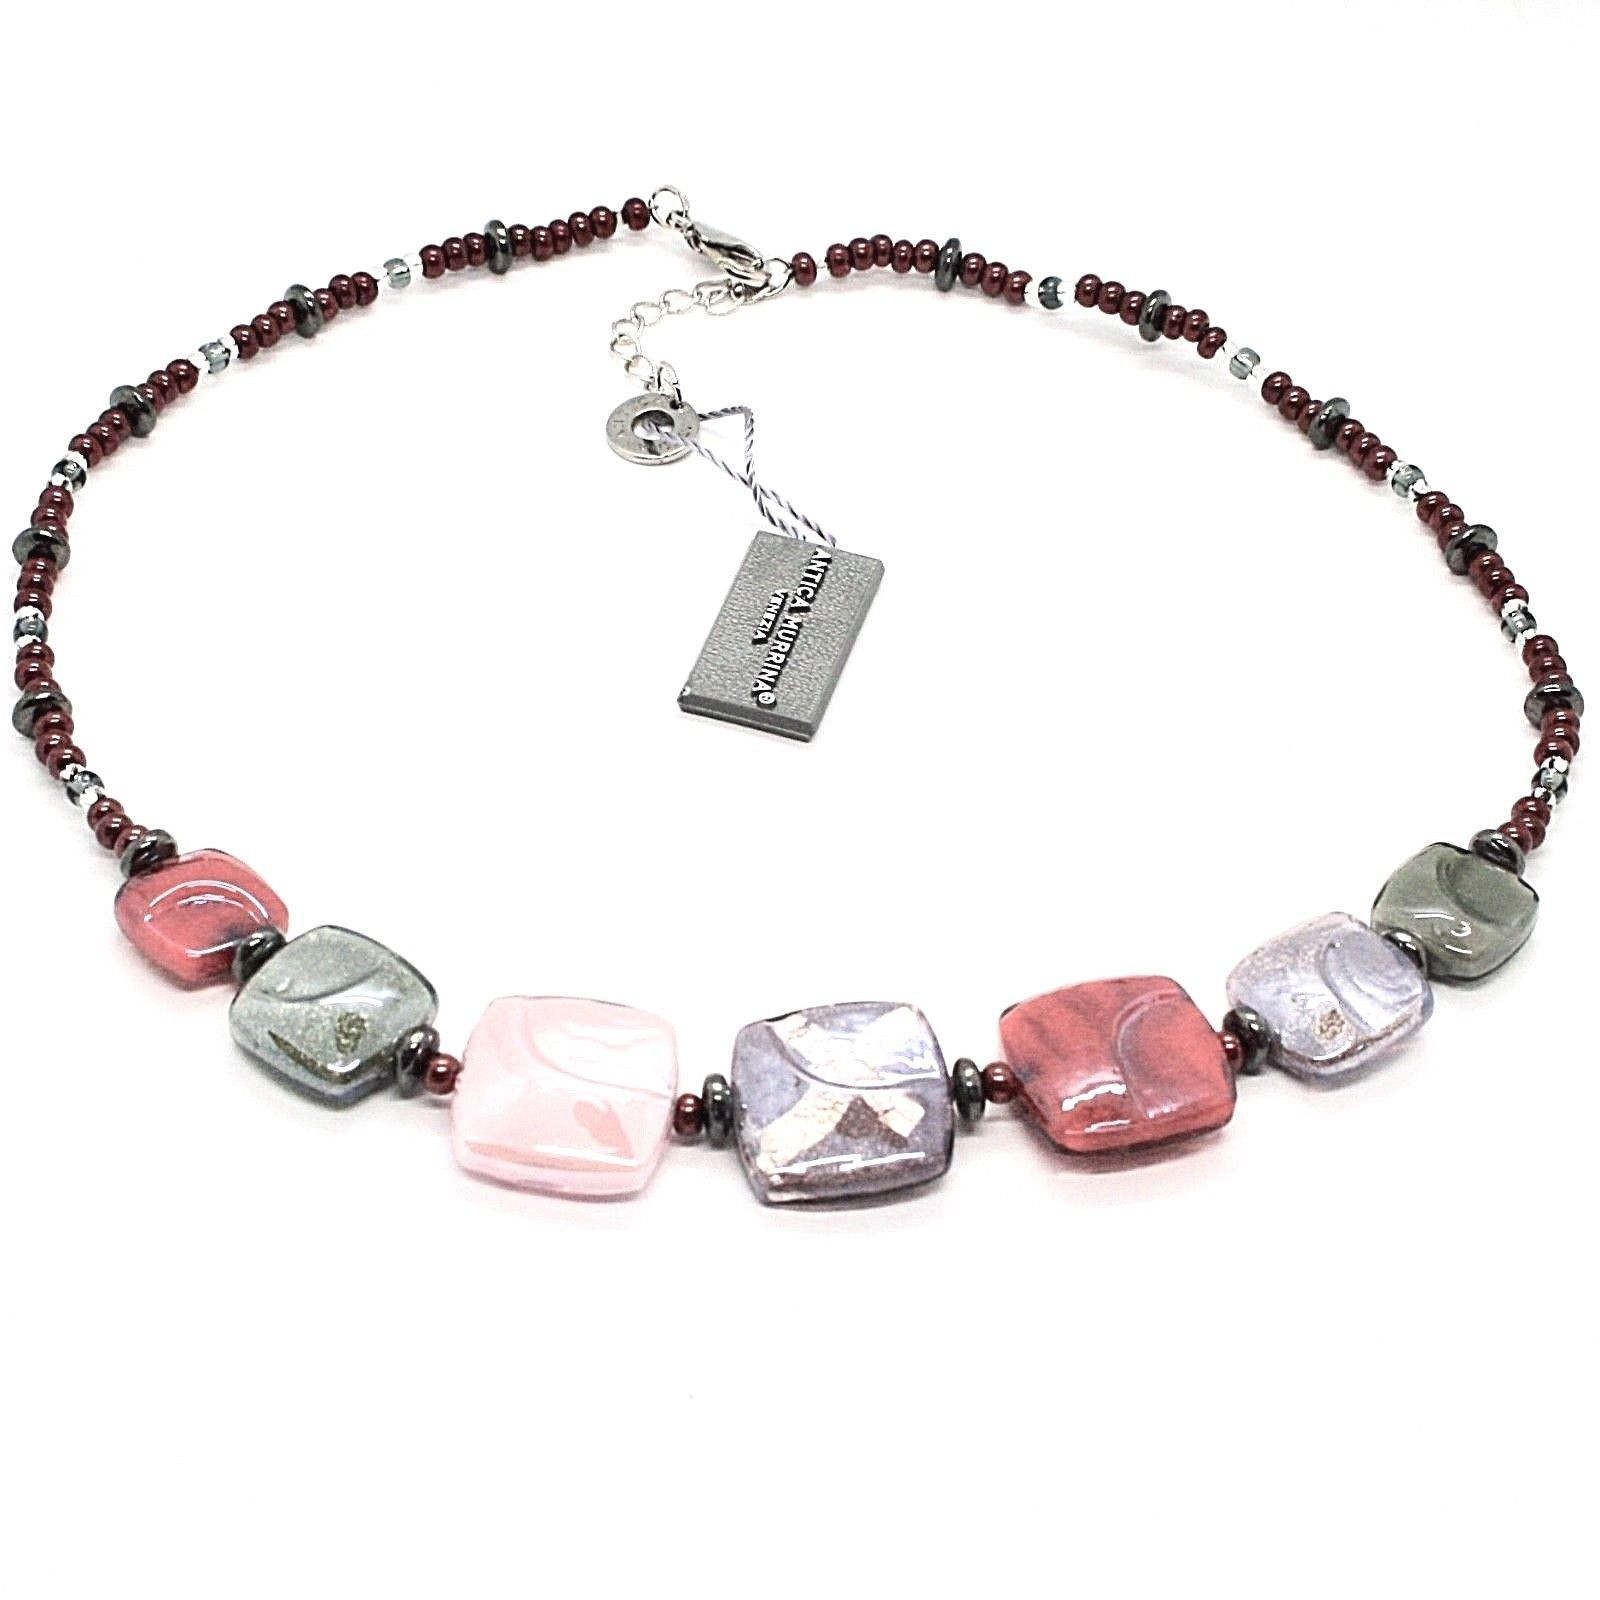 NECKLACE ANTICA MURRINA VENEZIA WITH MURANO GLASS PURPLE PINK GREEN CO989A11